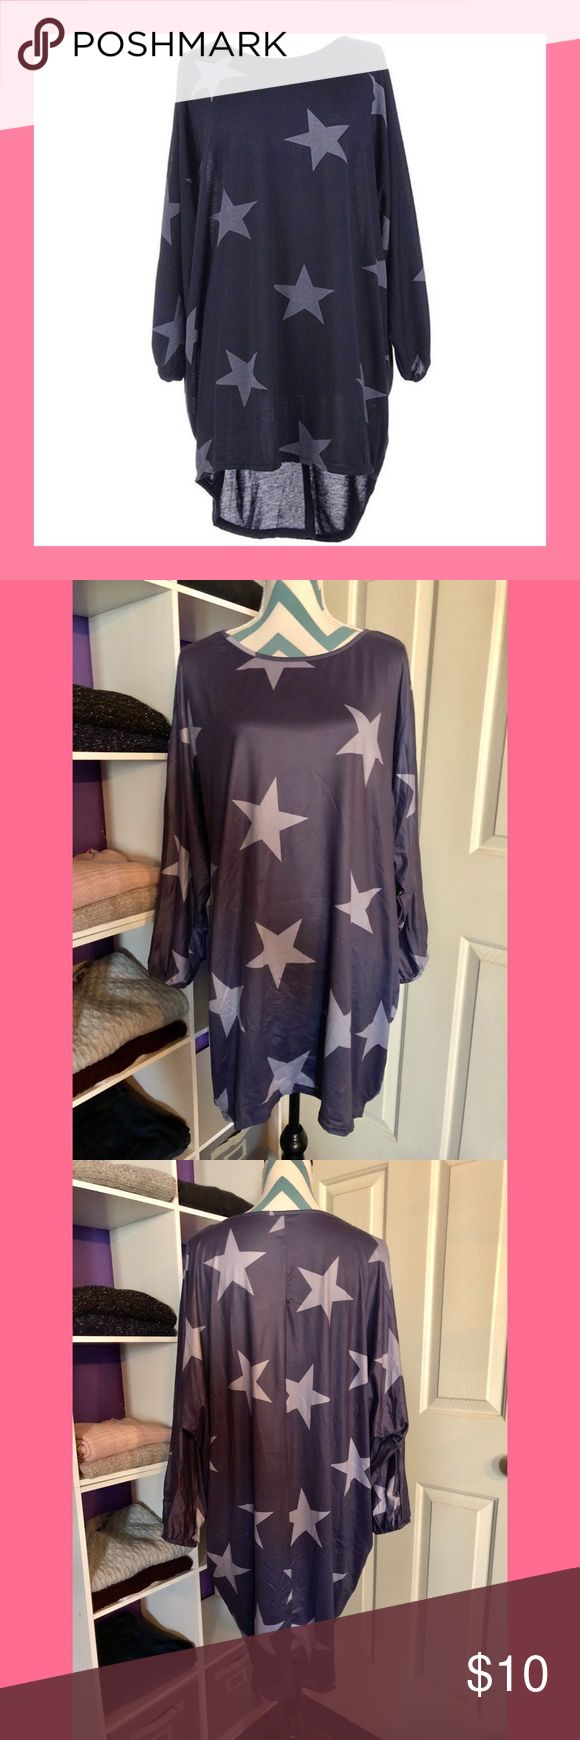 💫 Star Print Batwing Tunic Stylish batwing tunic/dress! Very roomy with the ability to wear it different ways (e.g., looks super cute belted!). Material is a shinny polyester. Blue/grey color with white interior. Boutique Tops Tunics